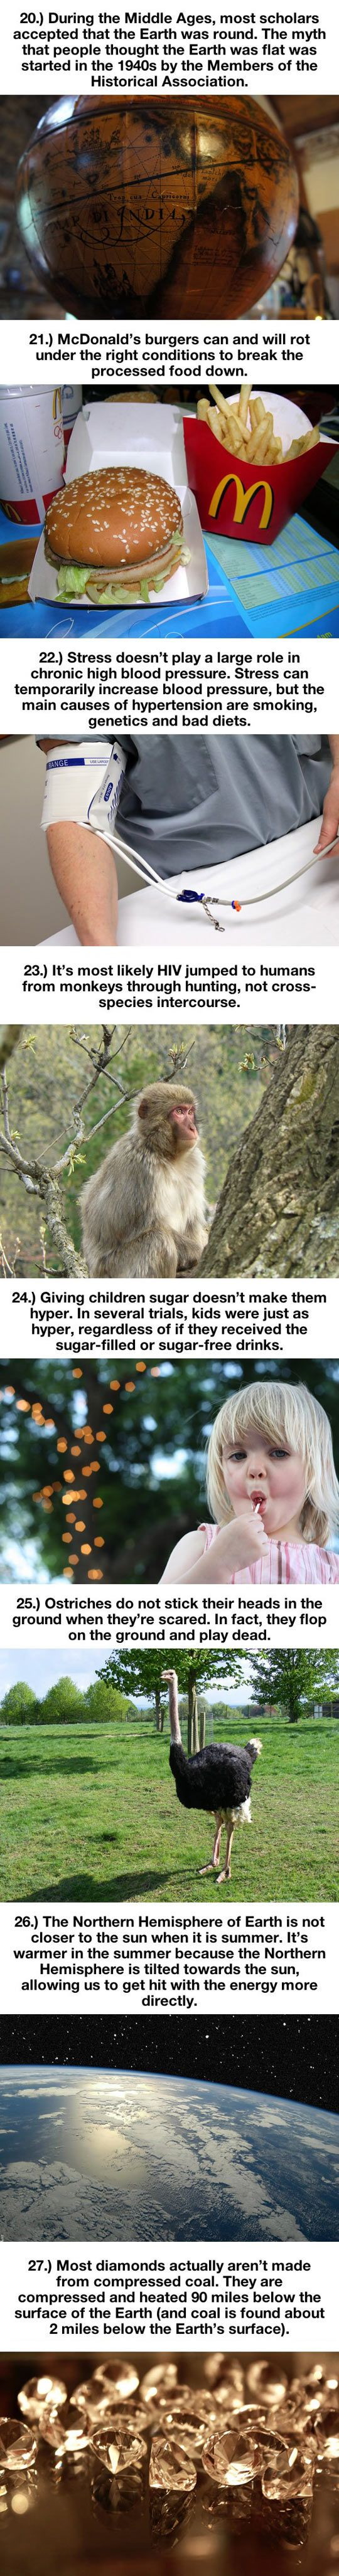 Things That Are Total Lies // funny pictures - funny photos - funny images - funny pics - funny quotes - #lol #humor #funnypictures